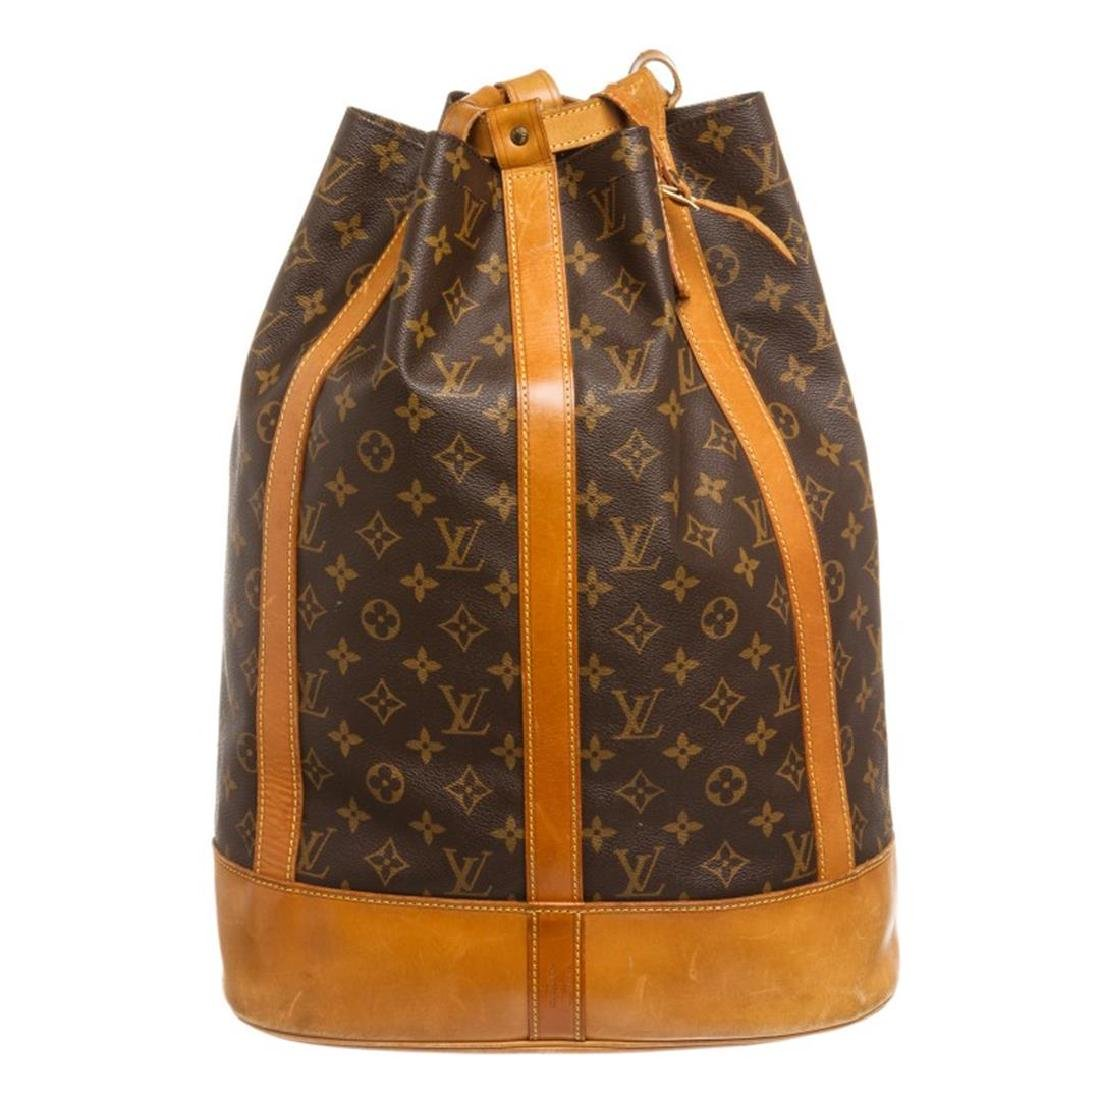 Louis Vuitton Monogram Canvas Leather Randonne Backpack